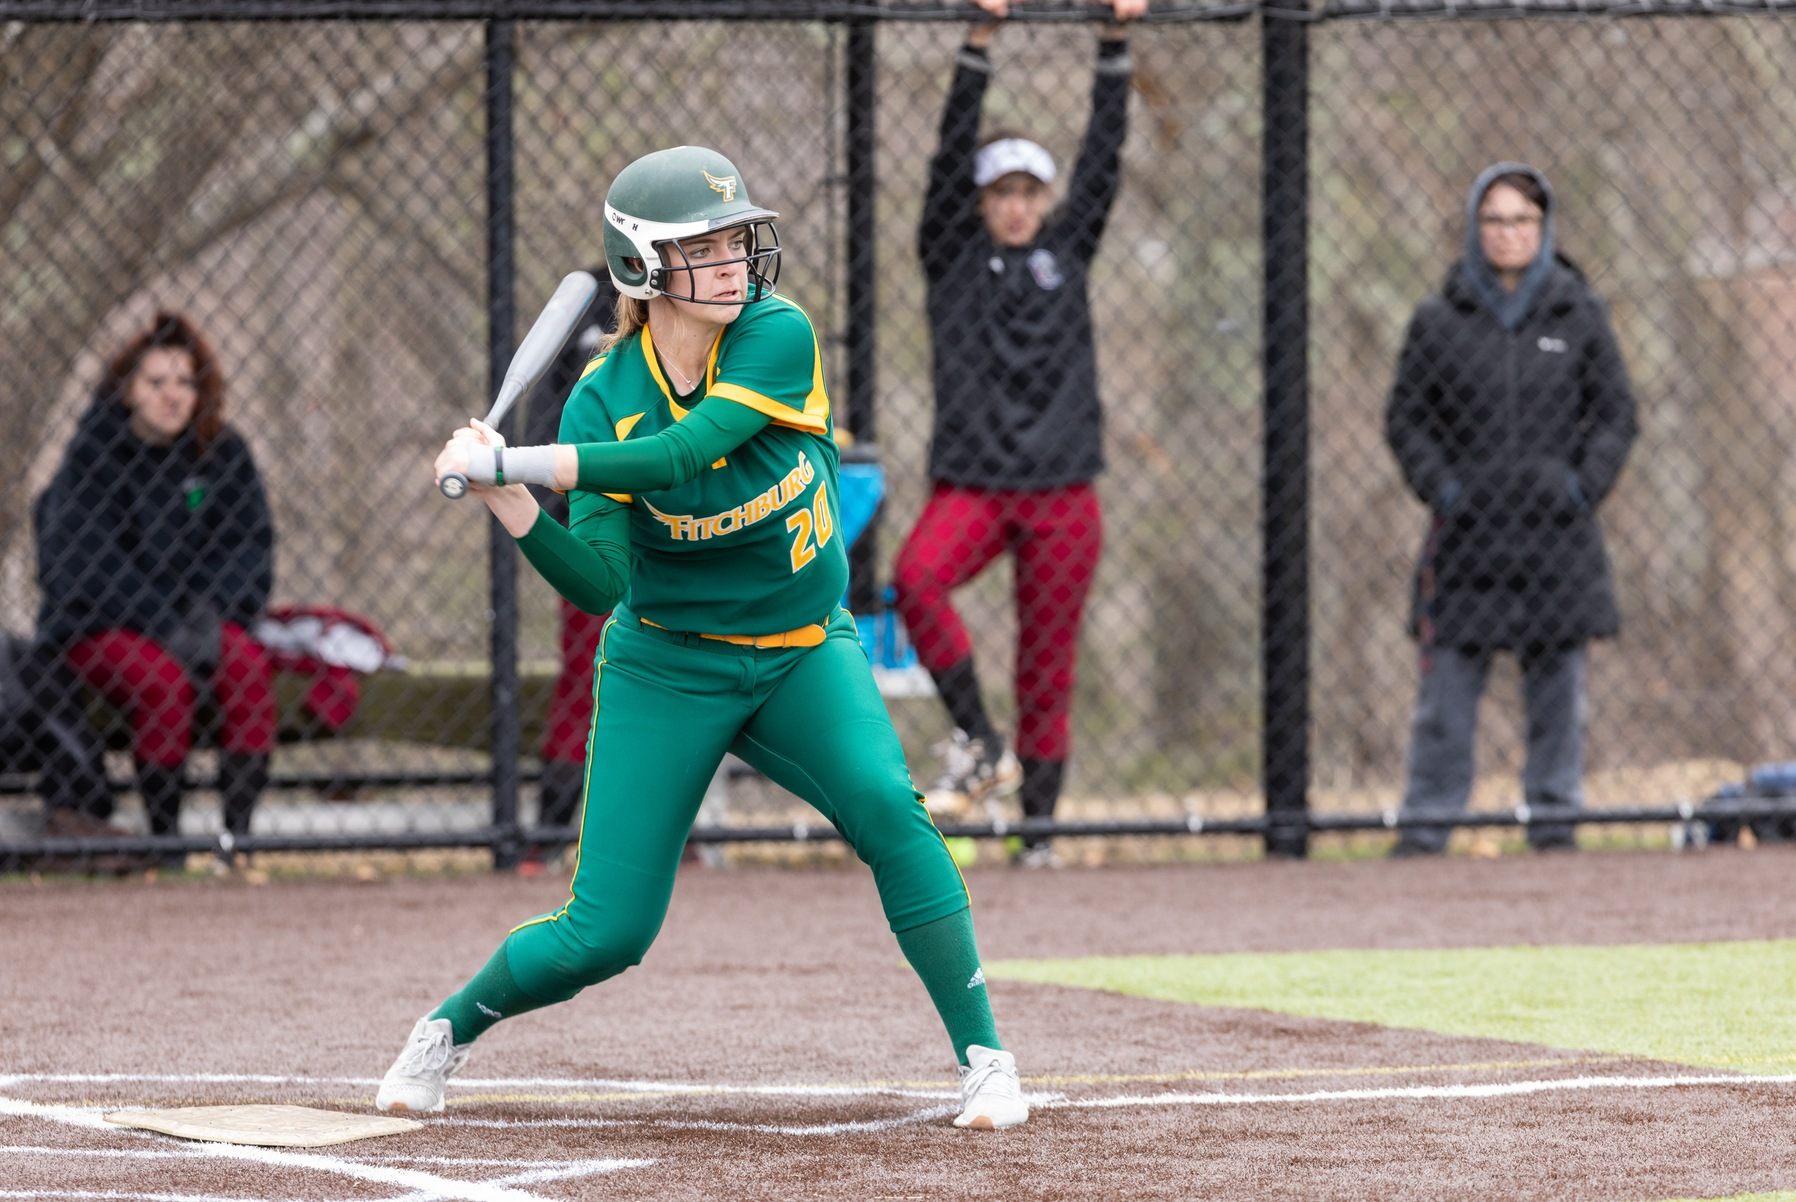 #4 Fitchburg State Advances Over #6 Worcester State